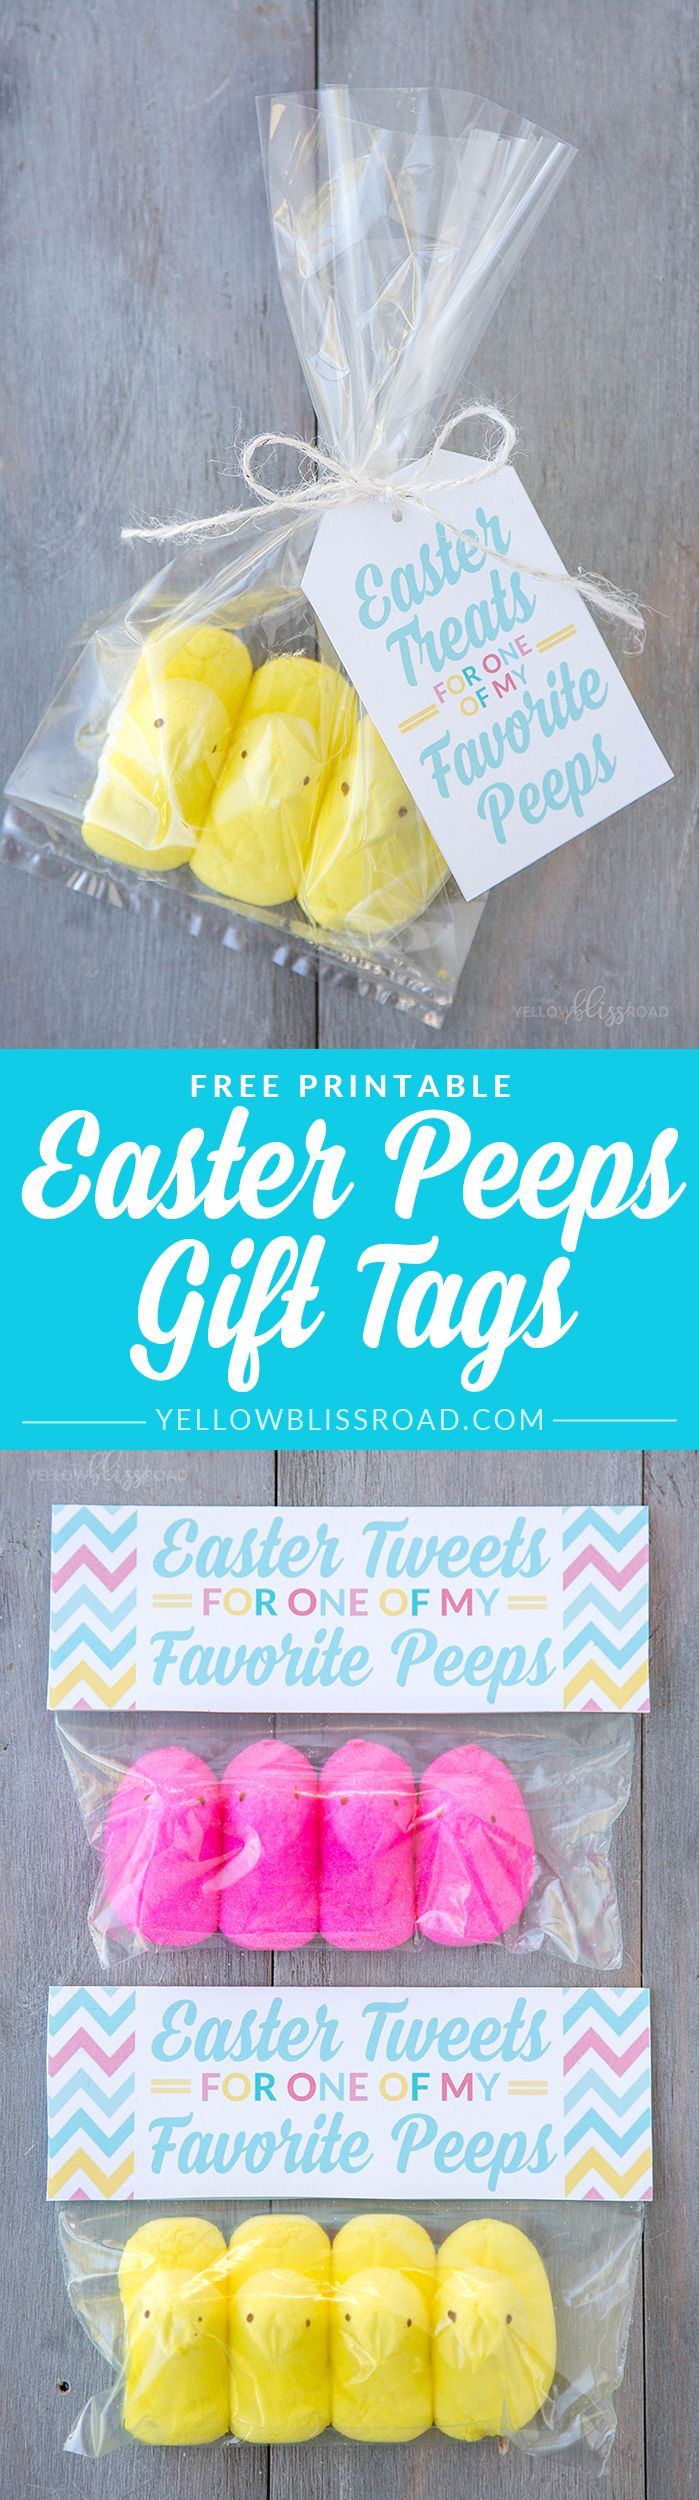 25 unique diy easter gifts for friends ideas on pinterest teen peeps easter gift idea with free printables negle Image collections